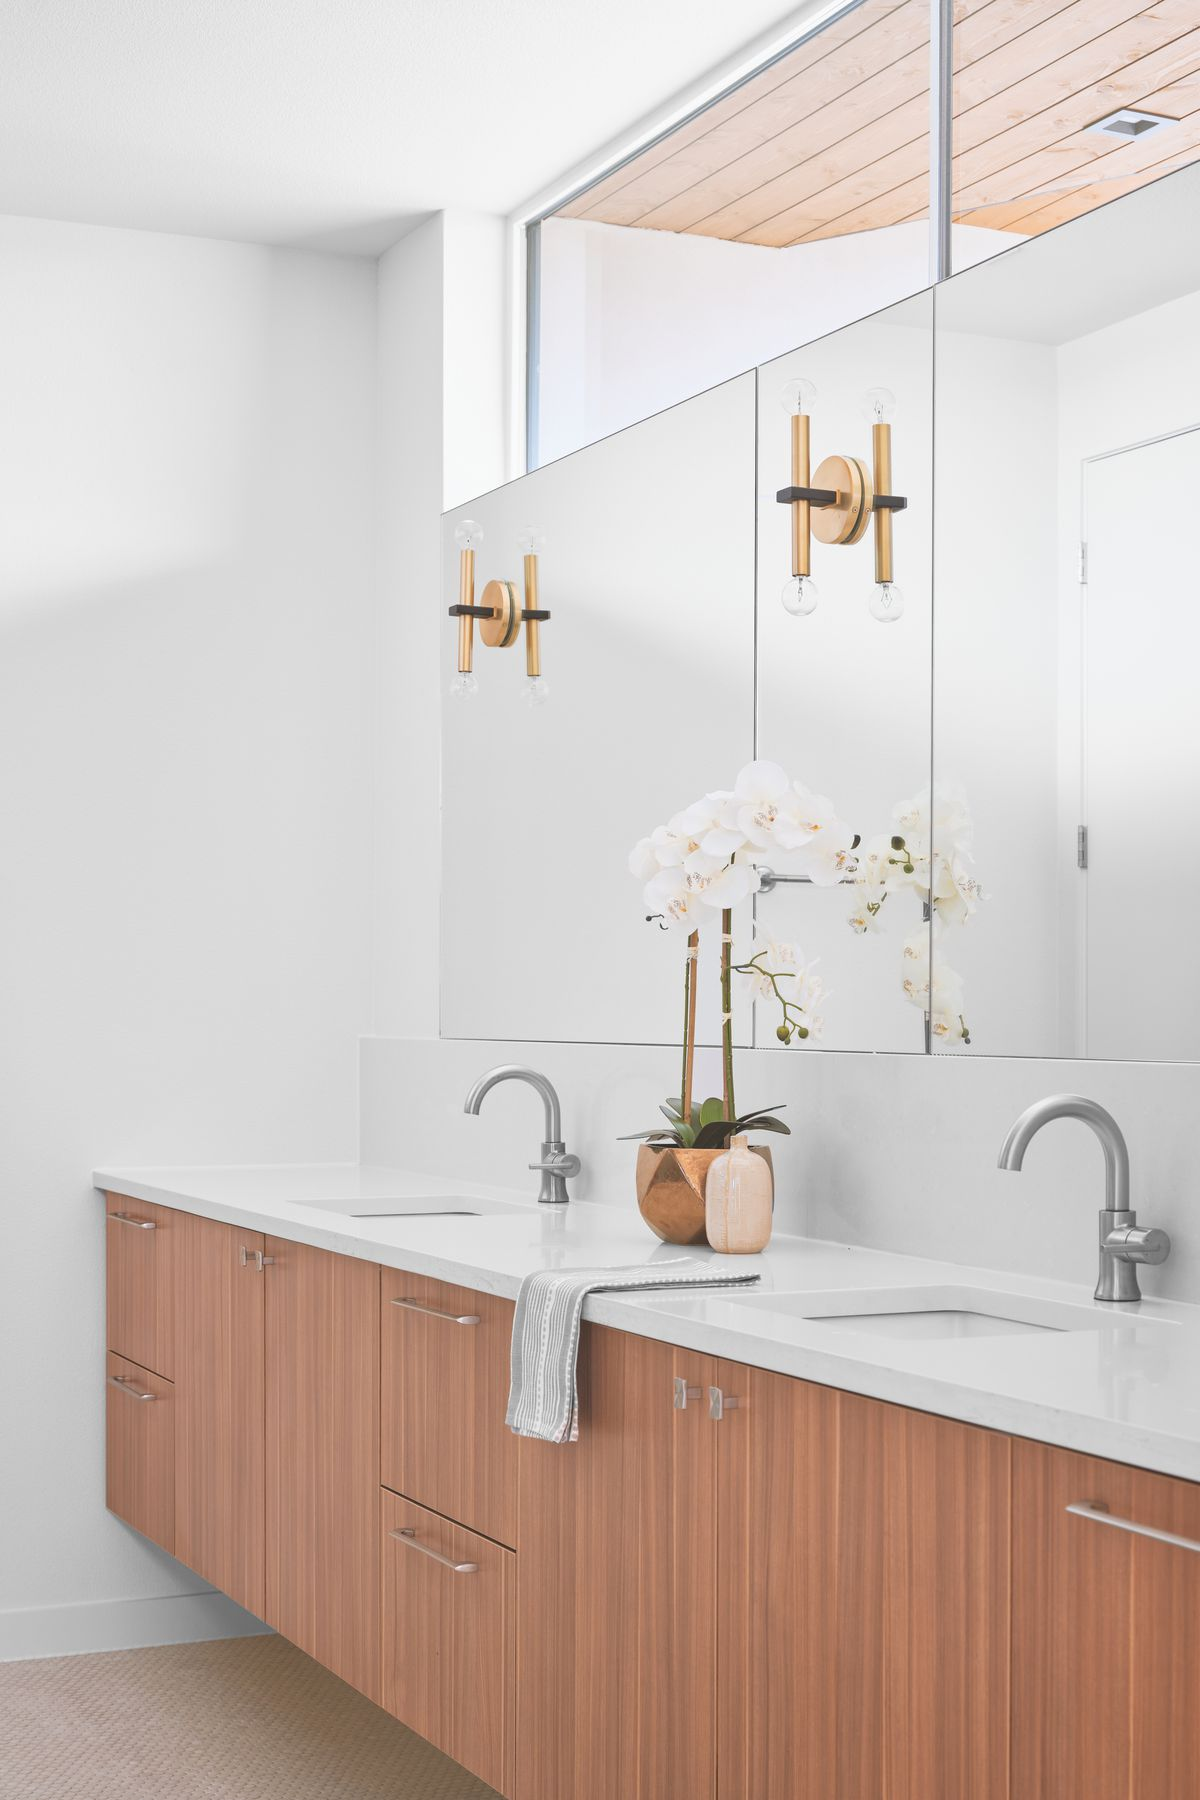 Photo of part of a bathroom with a long counter with two sinks and wood-fronted cabinets wit a long mirror in back and a long clerestory window above.